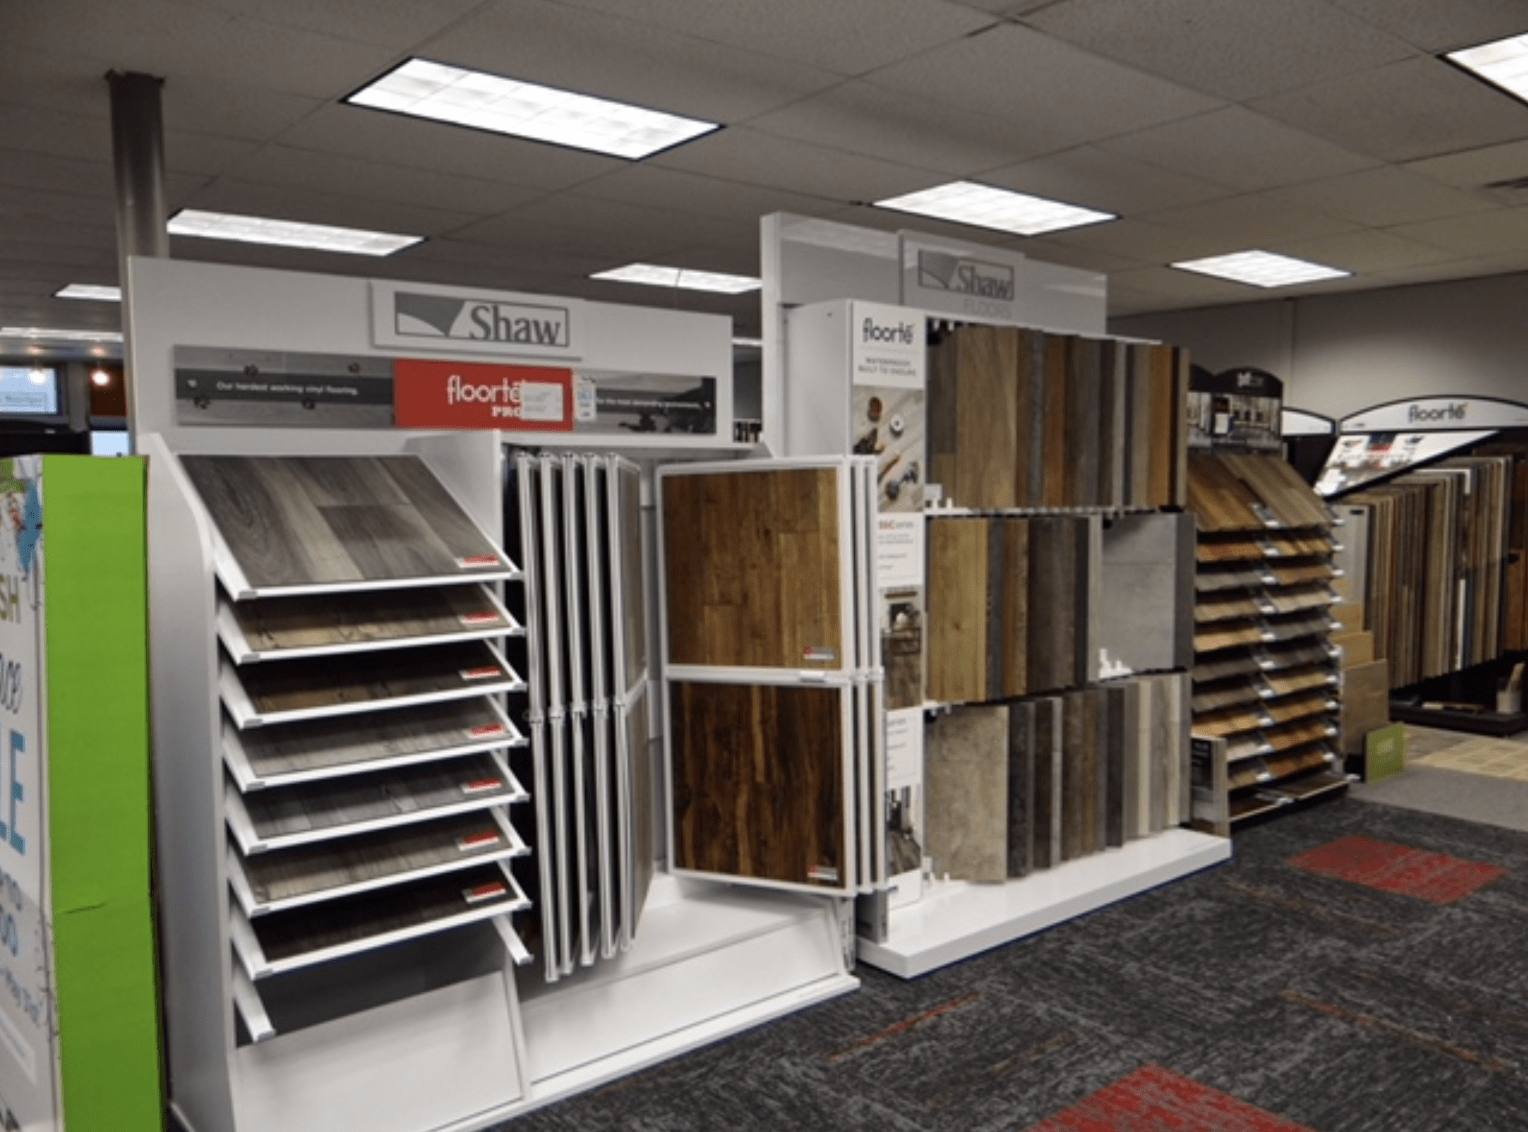 Waterproof flooring from Shaw for your Lincoln, NE home from Jim's Carpet & Supplies